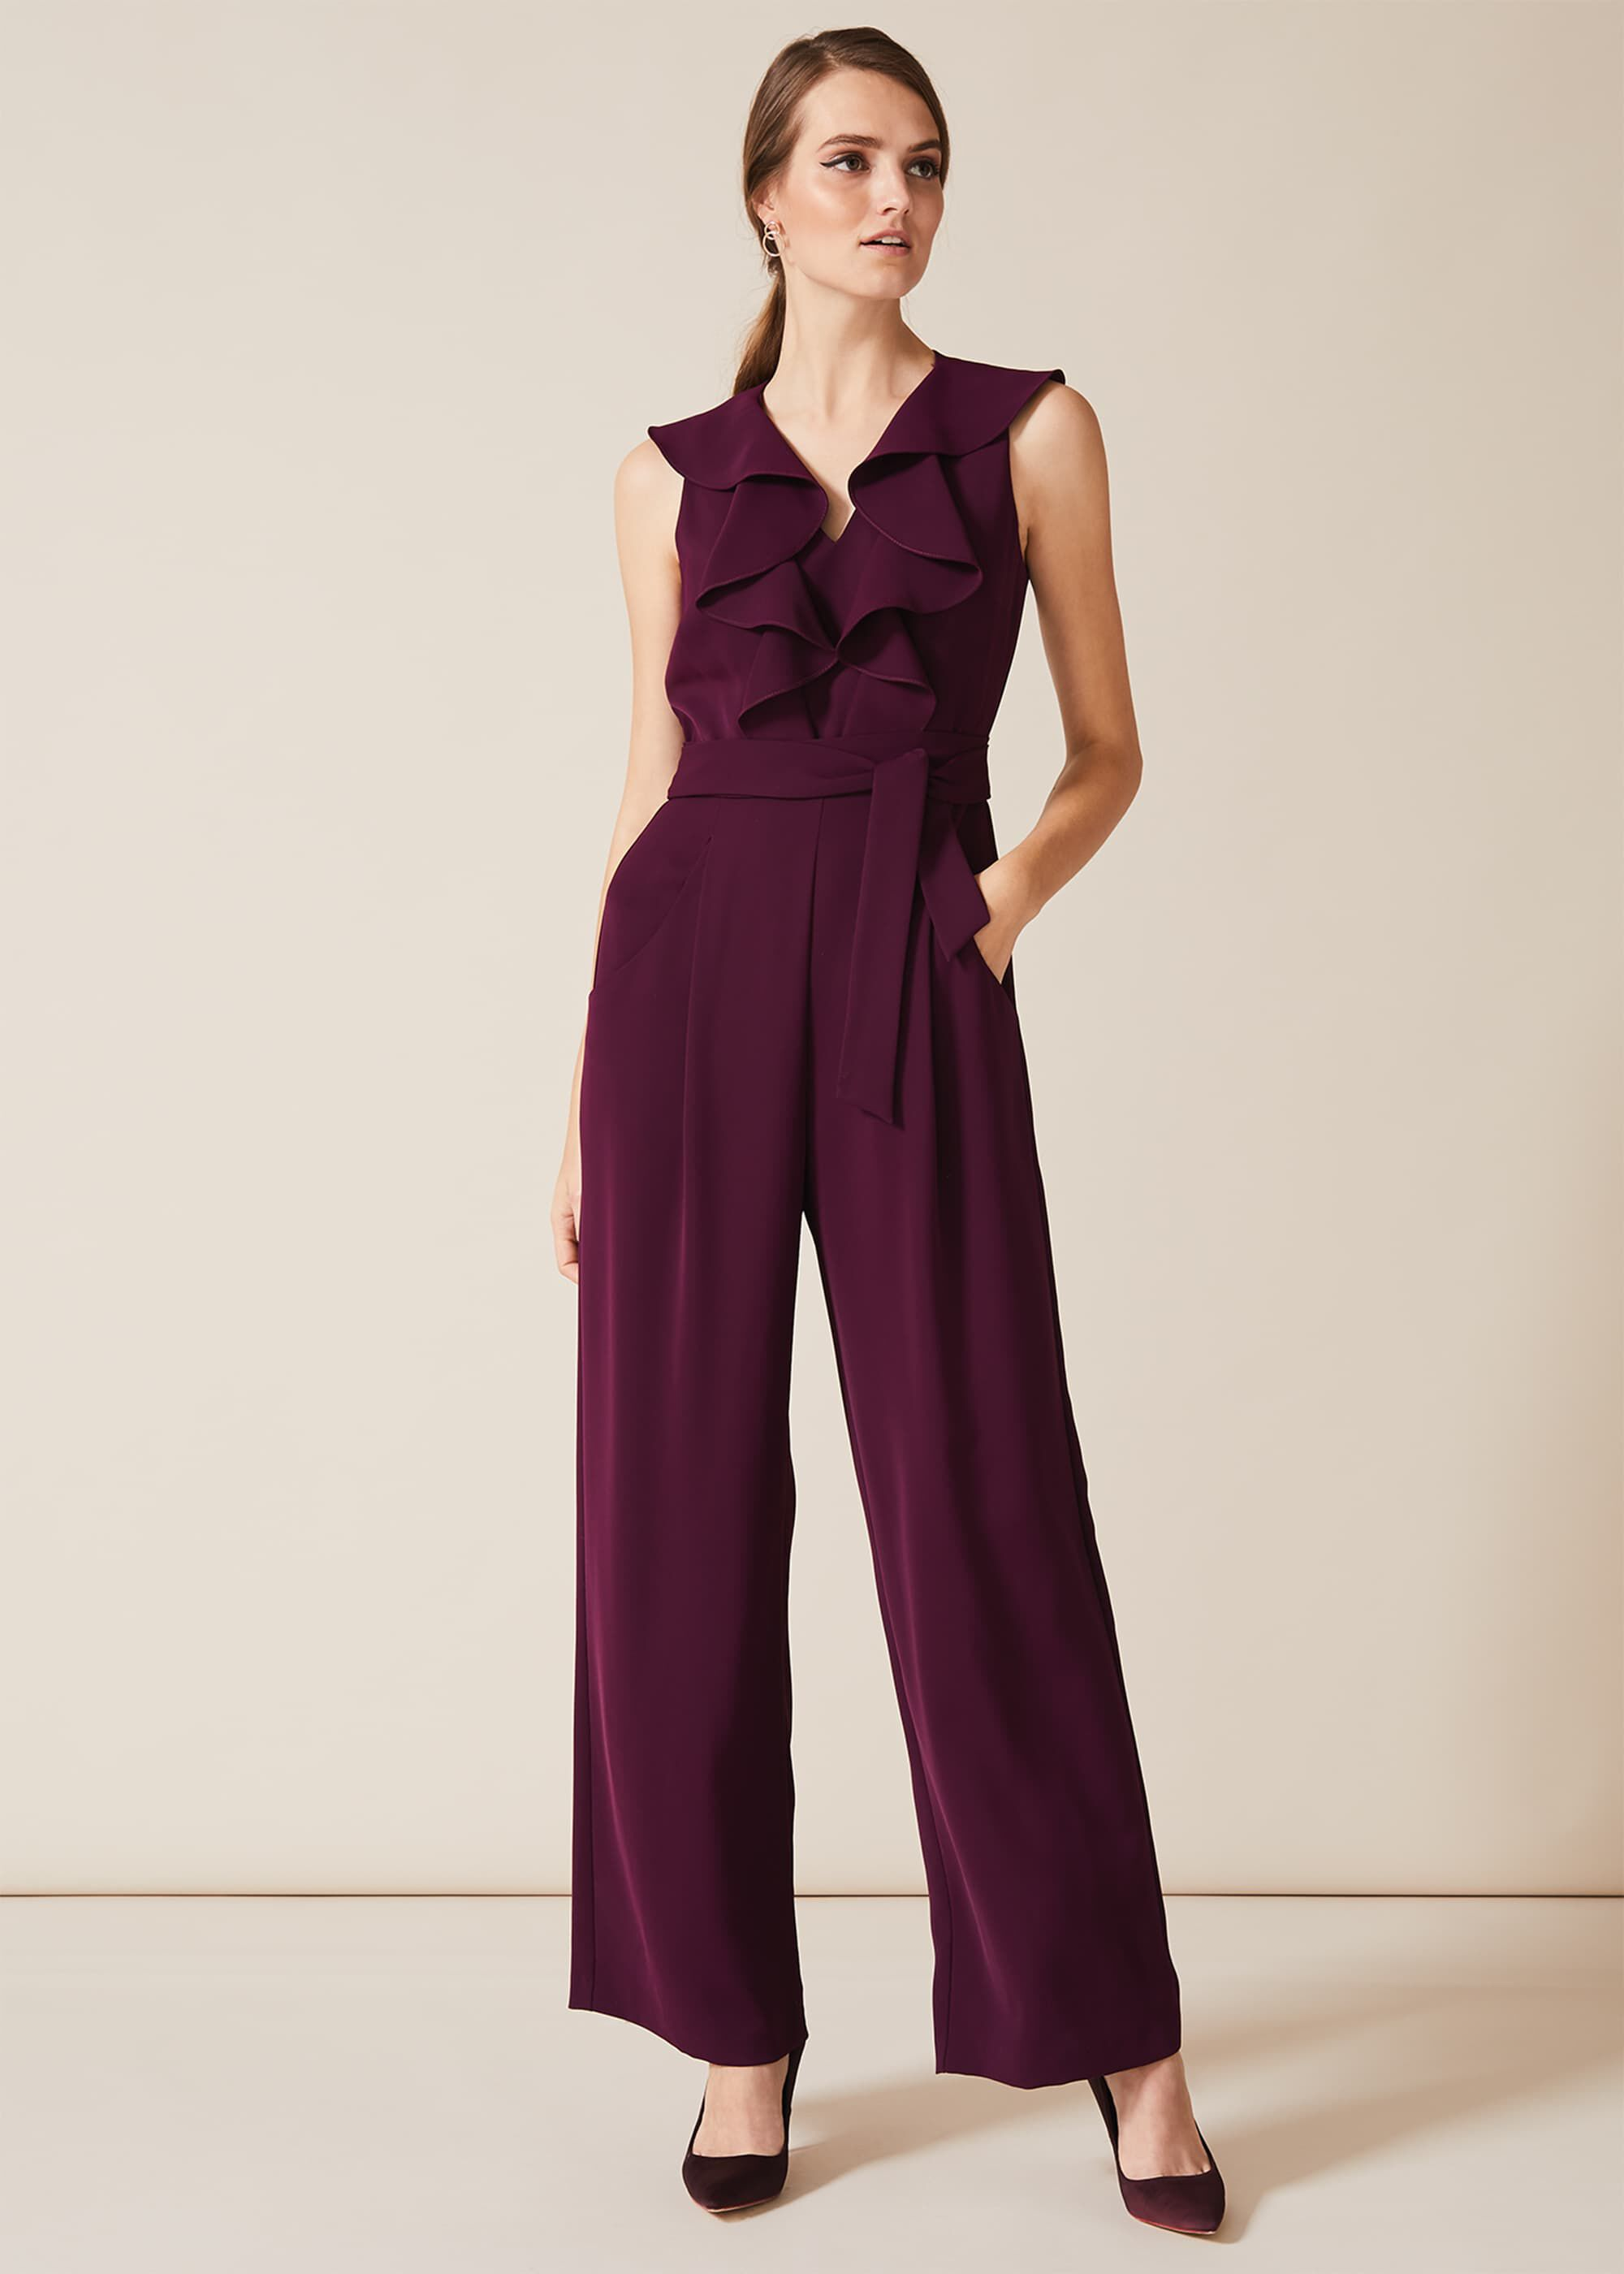 Phase Eight Linda Frill Wrap Jumpsuit, Purple, Jumpsuit